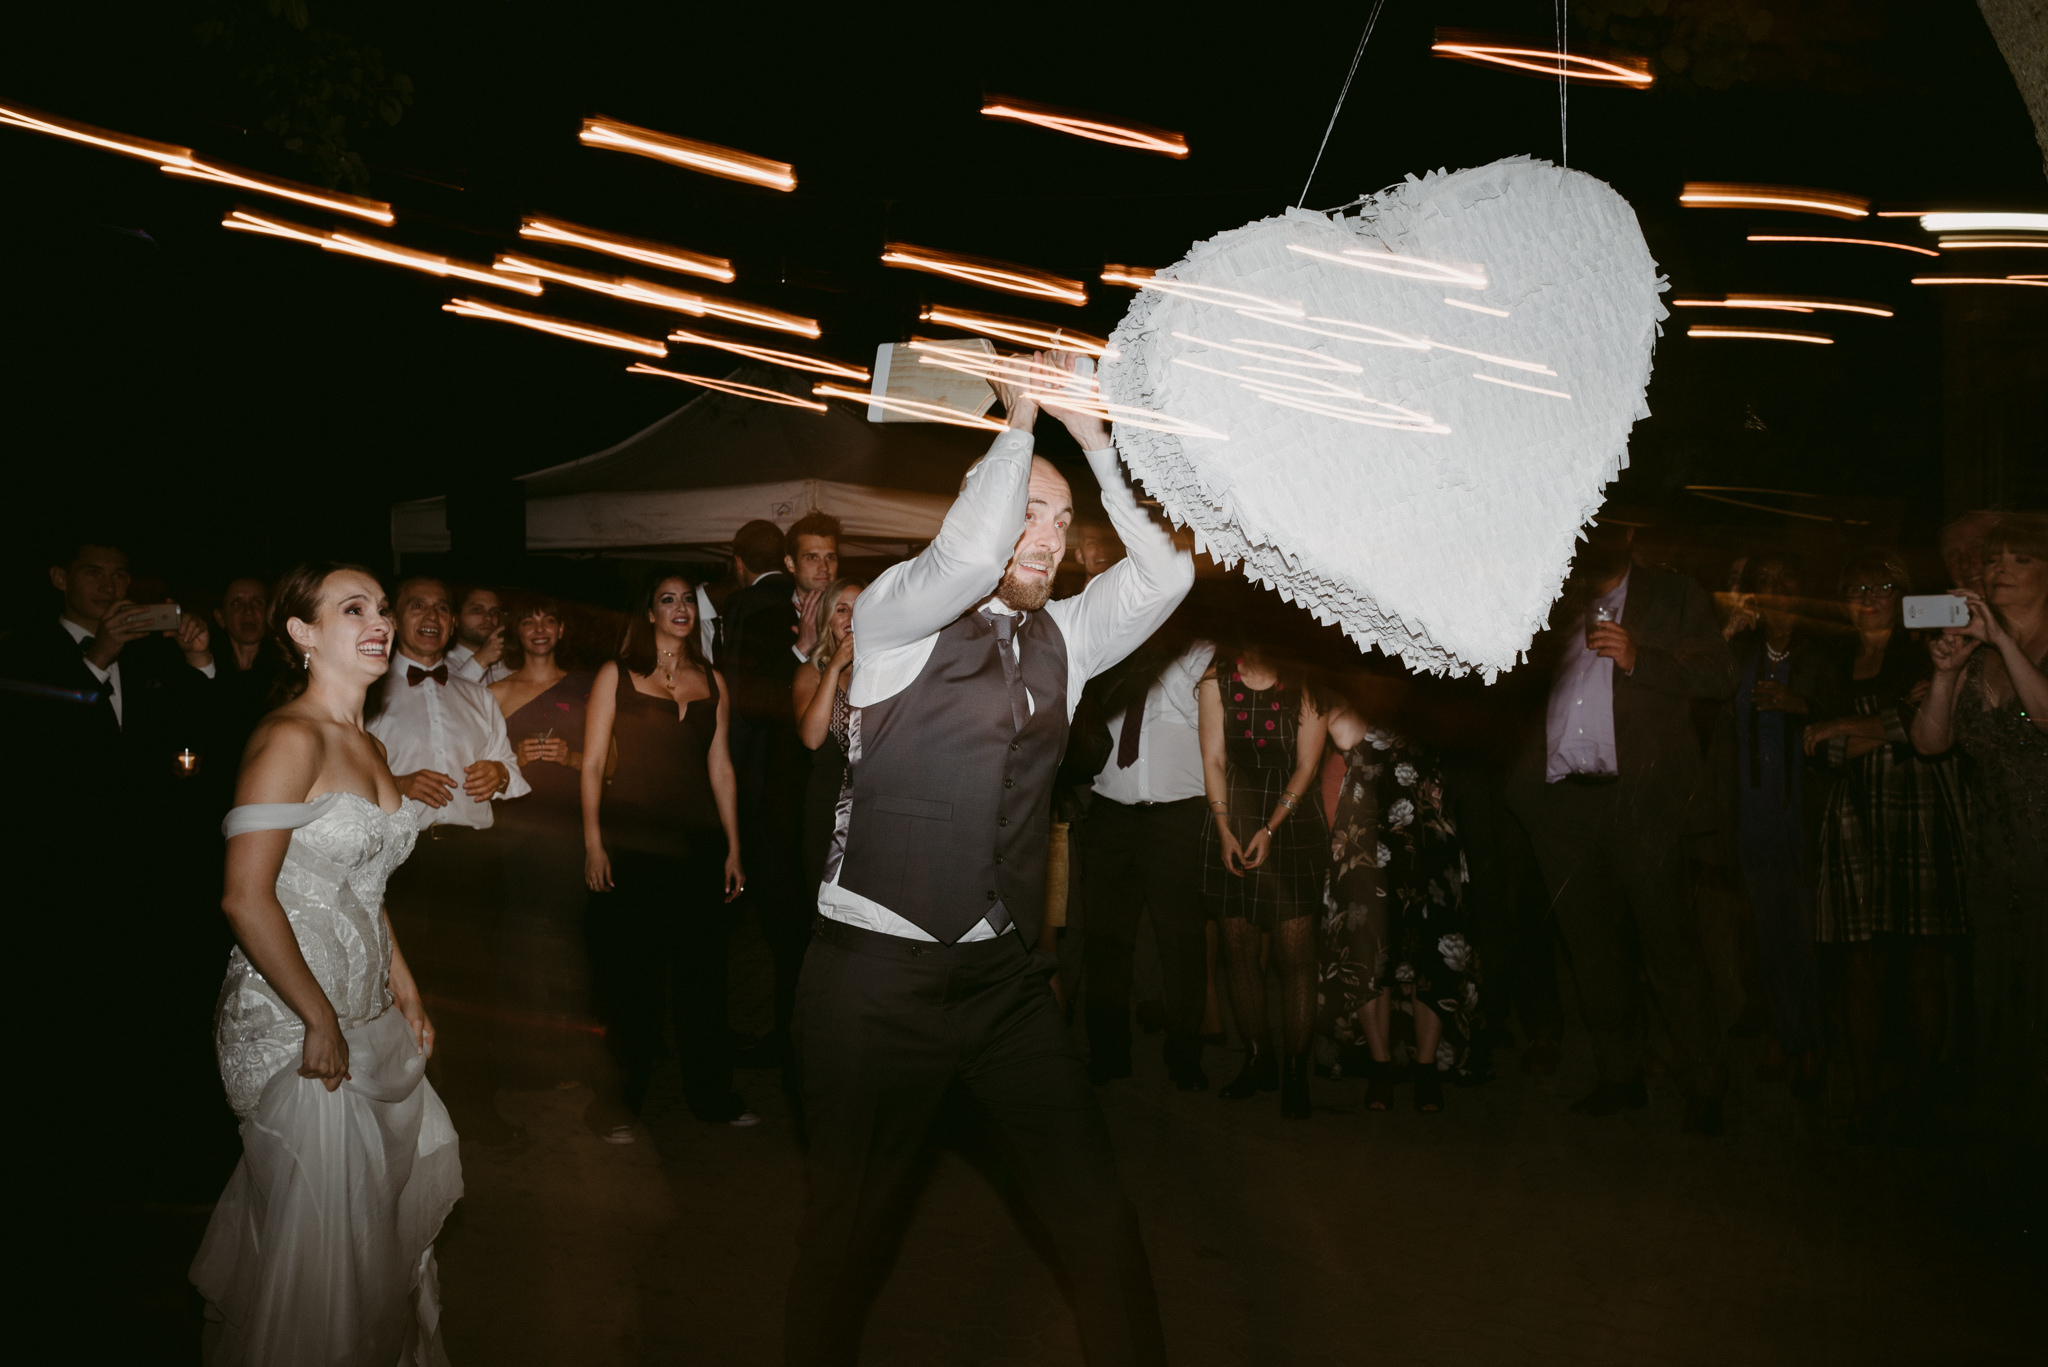 Groom hitting piñata at wedding